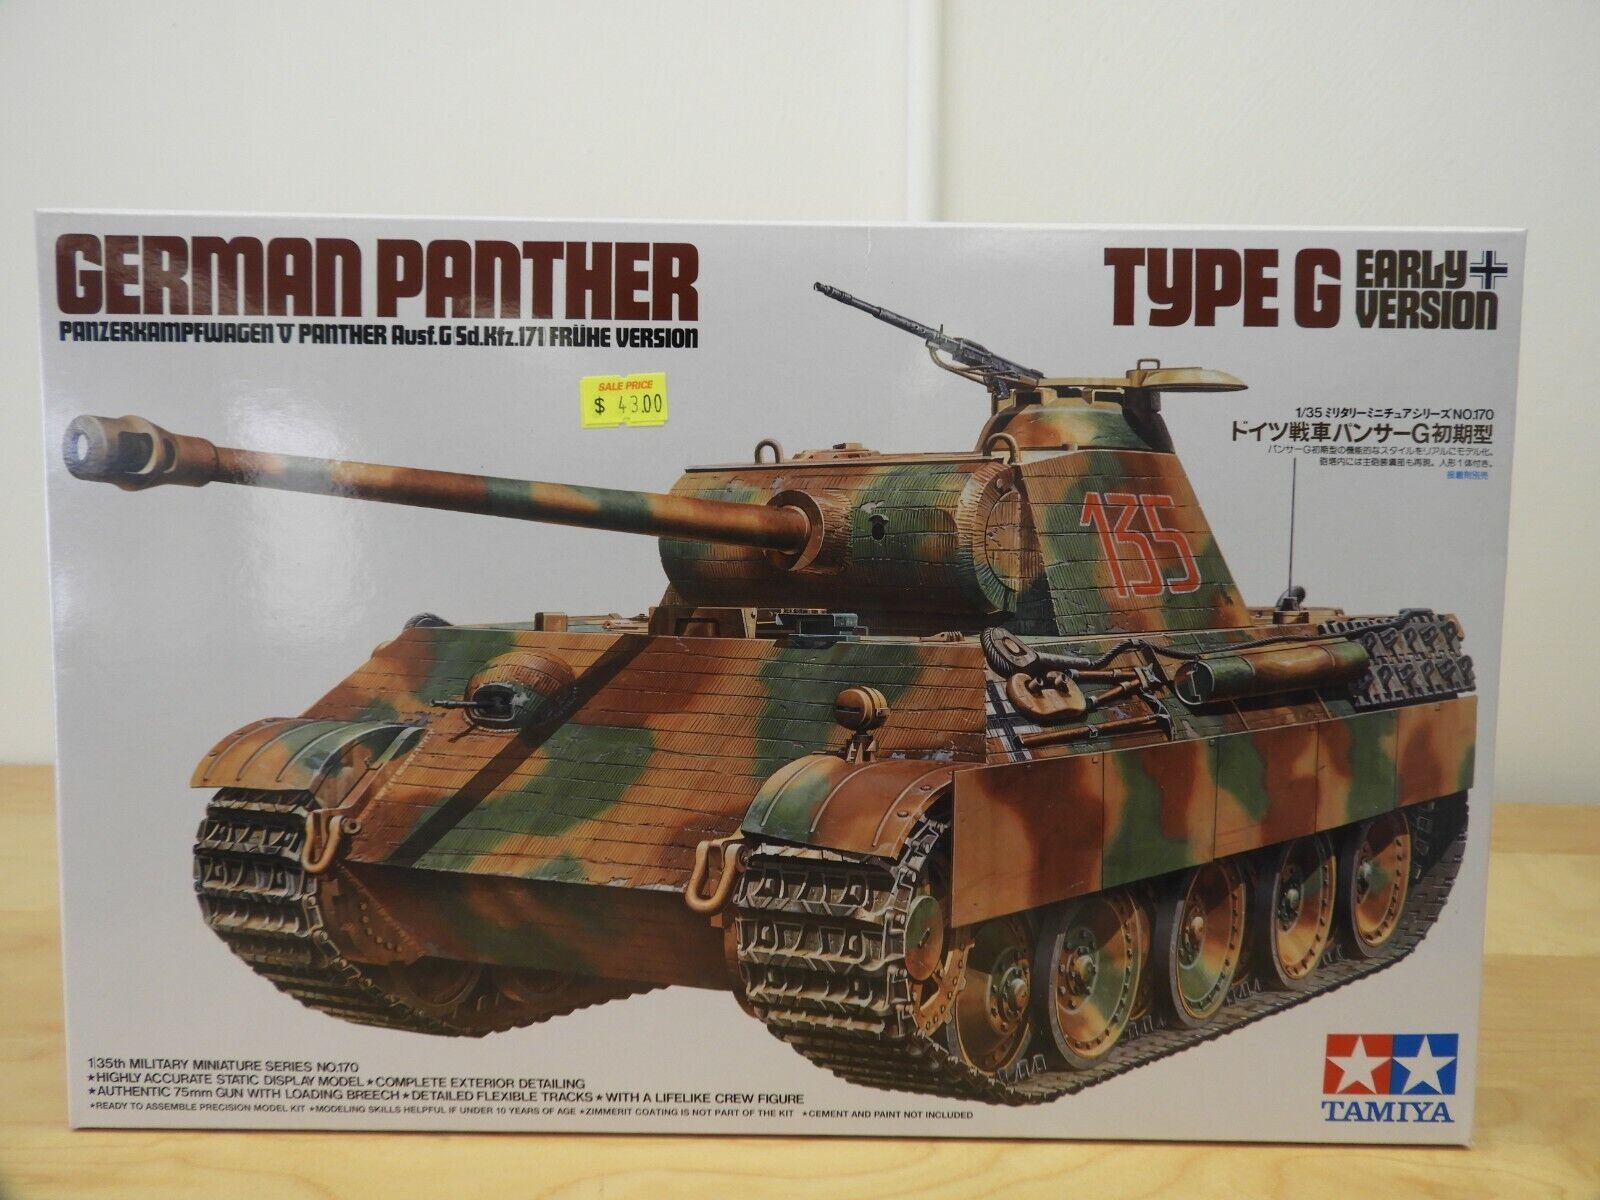 TAMIYA, GERMAN PANTHER TYPE G  1 35 Scale, Plastic Tank Kit, Item 35170